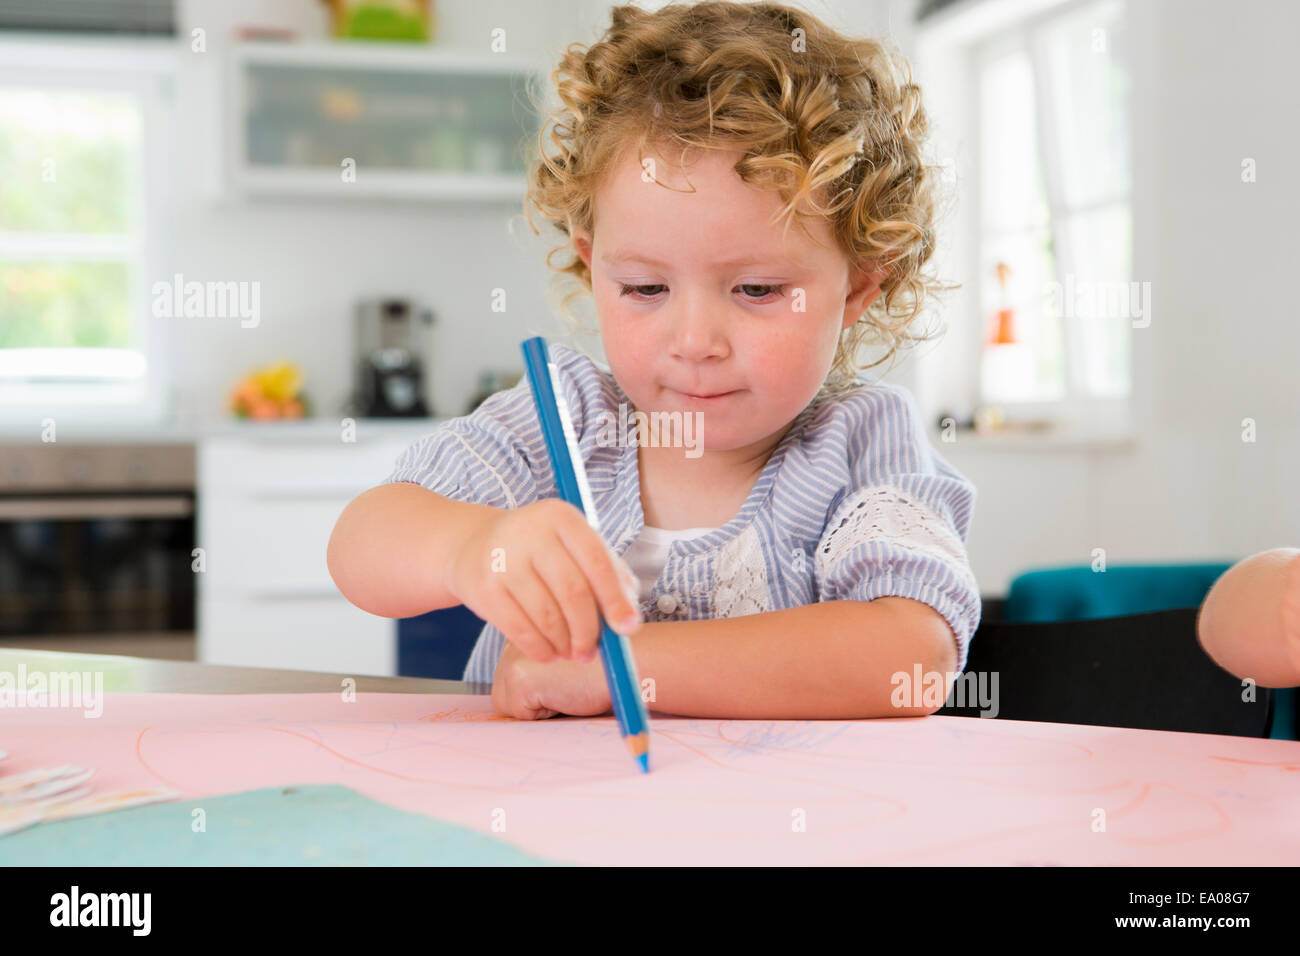 Girl drawing with pencil - Stock Image